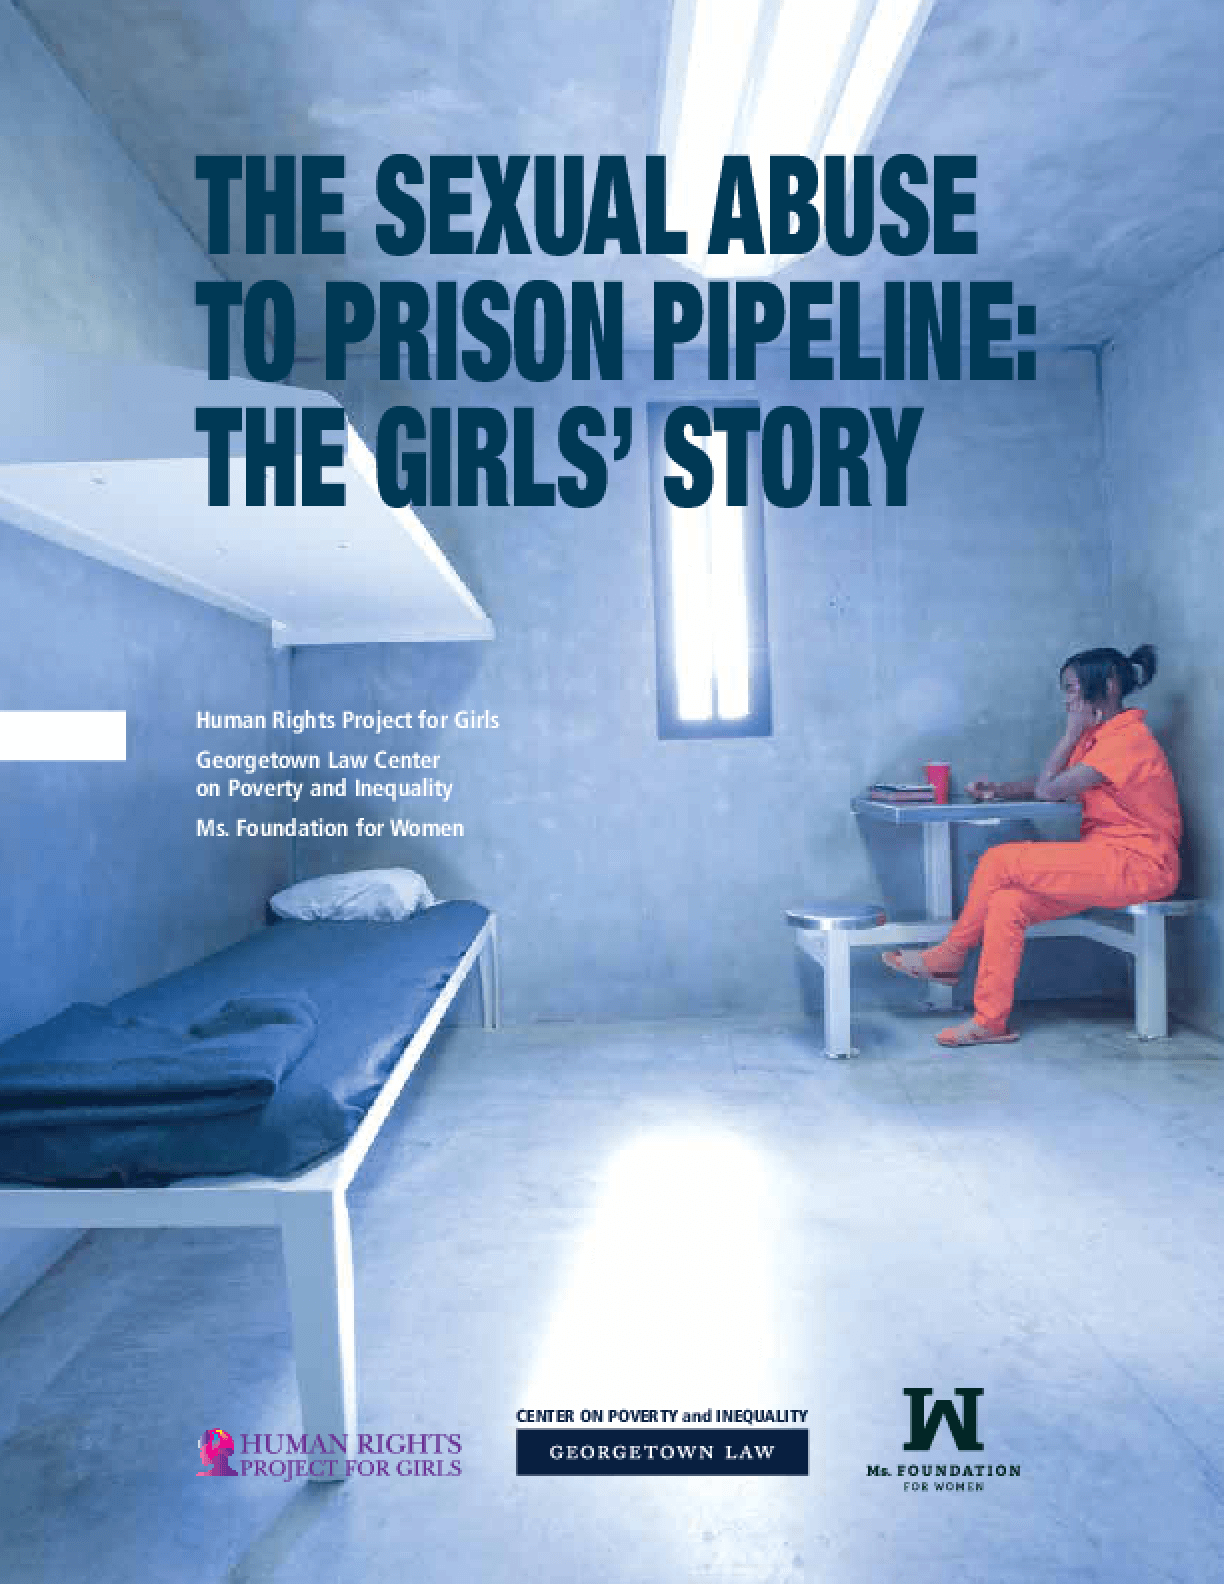 The Sexual Abuse to Prison Pipeline: The Girls' Story